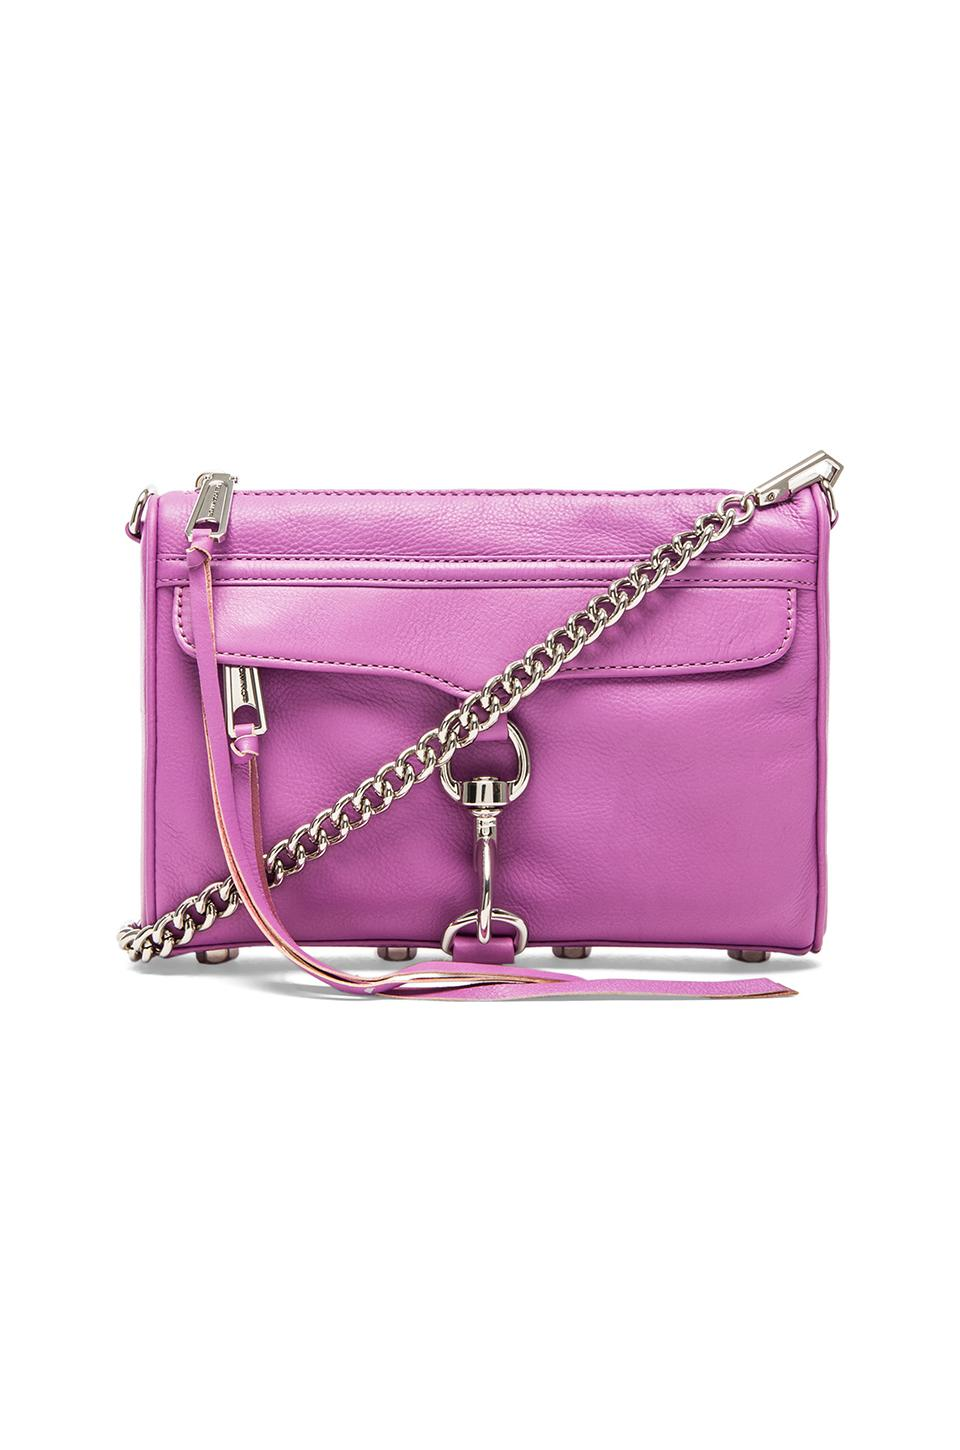 Rebecca Minkoff Mini MAC in Grape